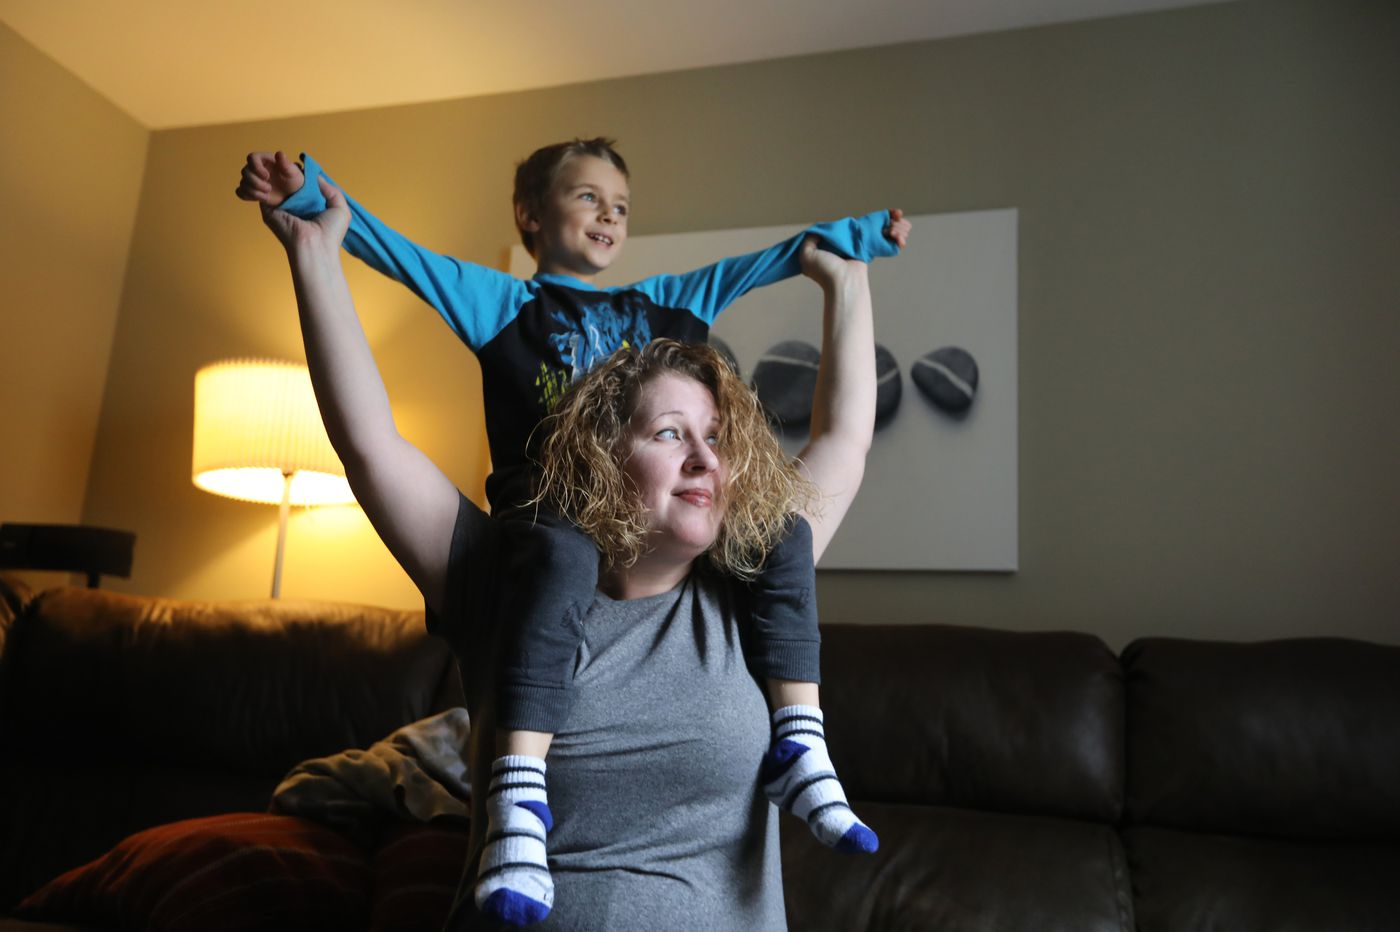 Invisible women, lost girls: To be female on the autism spectrum